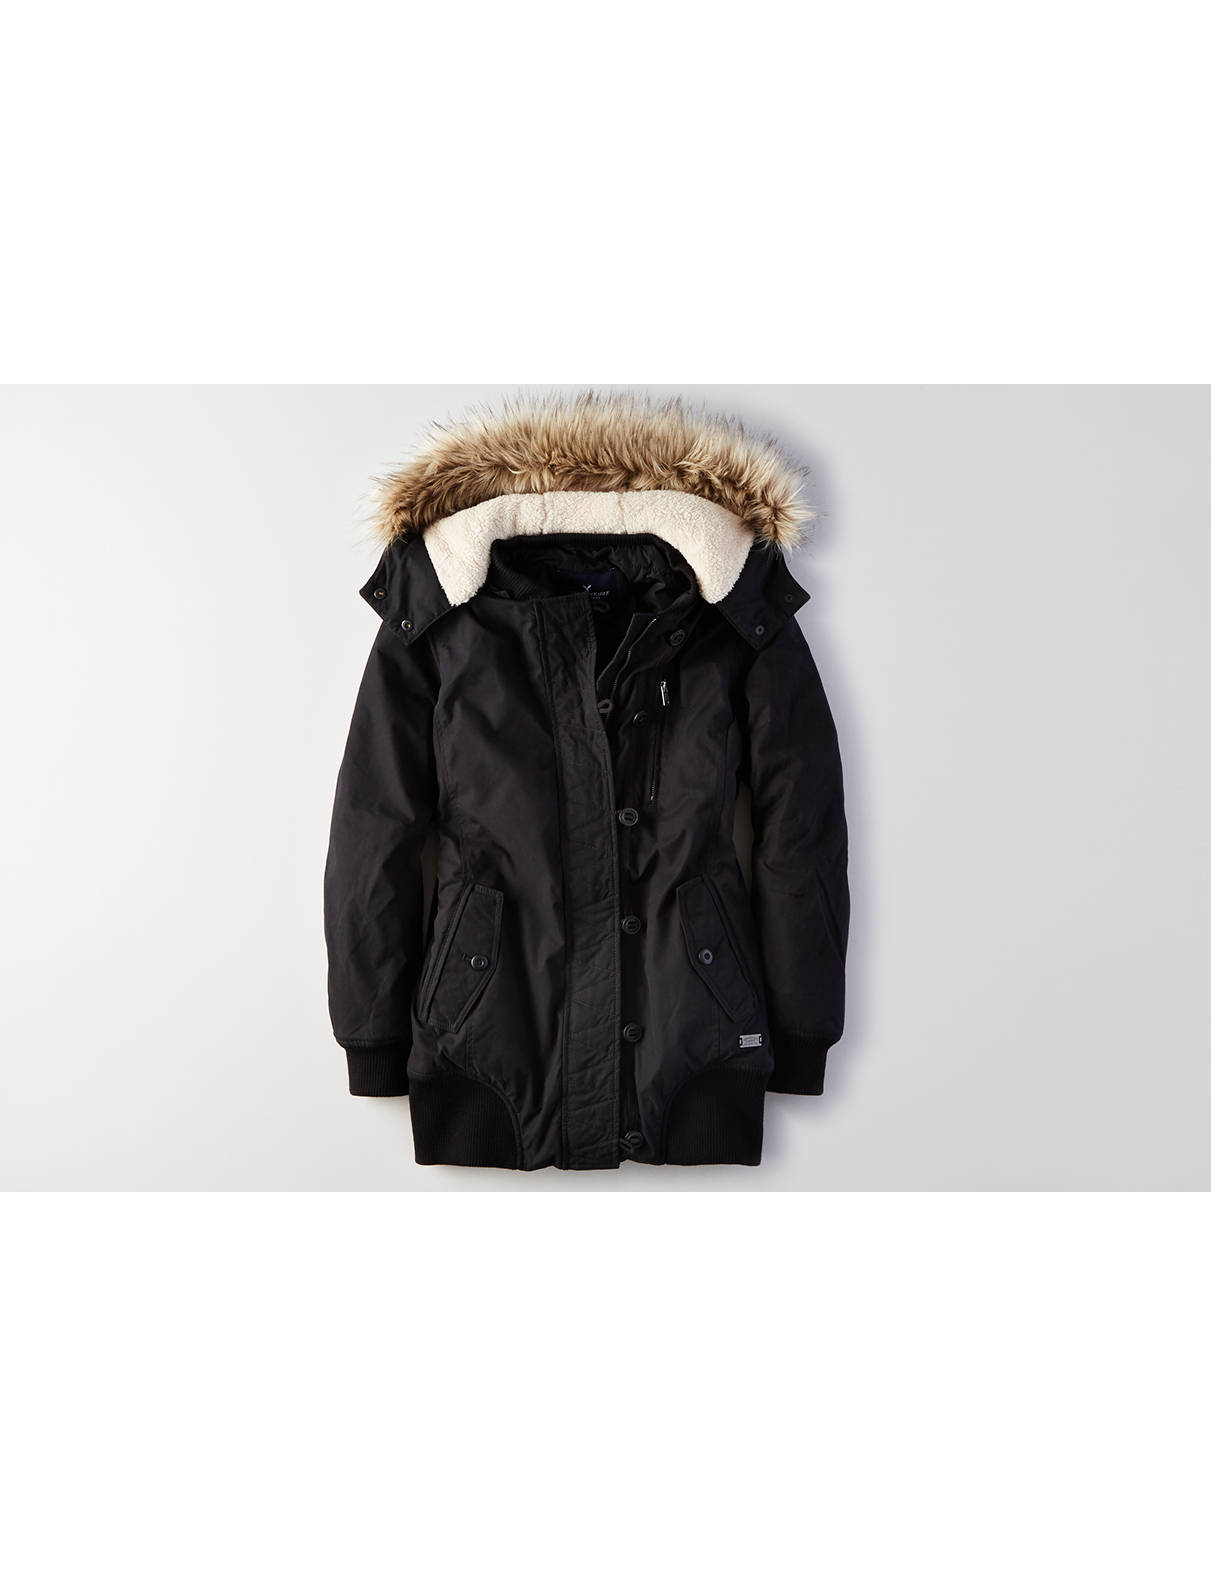 AEO Hooded Convertible Parka